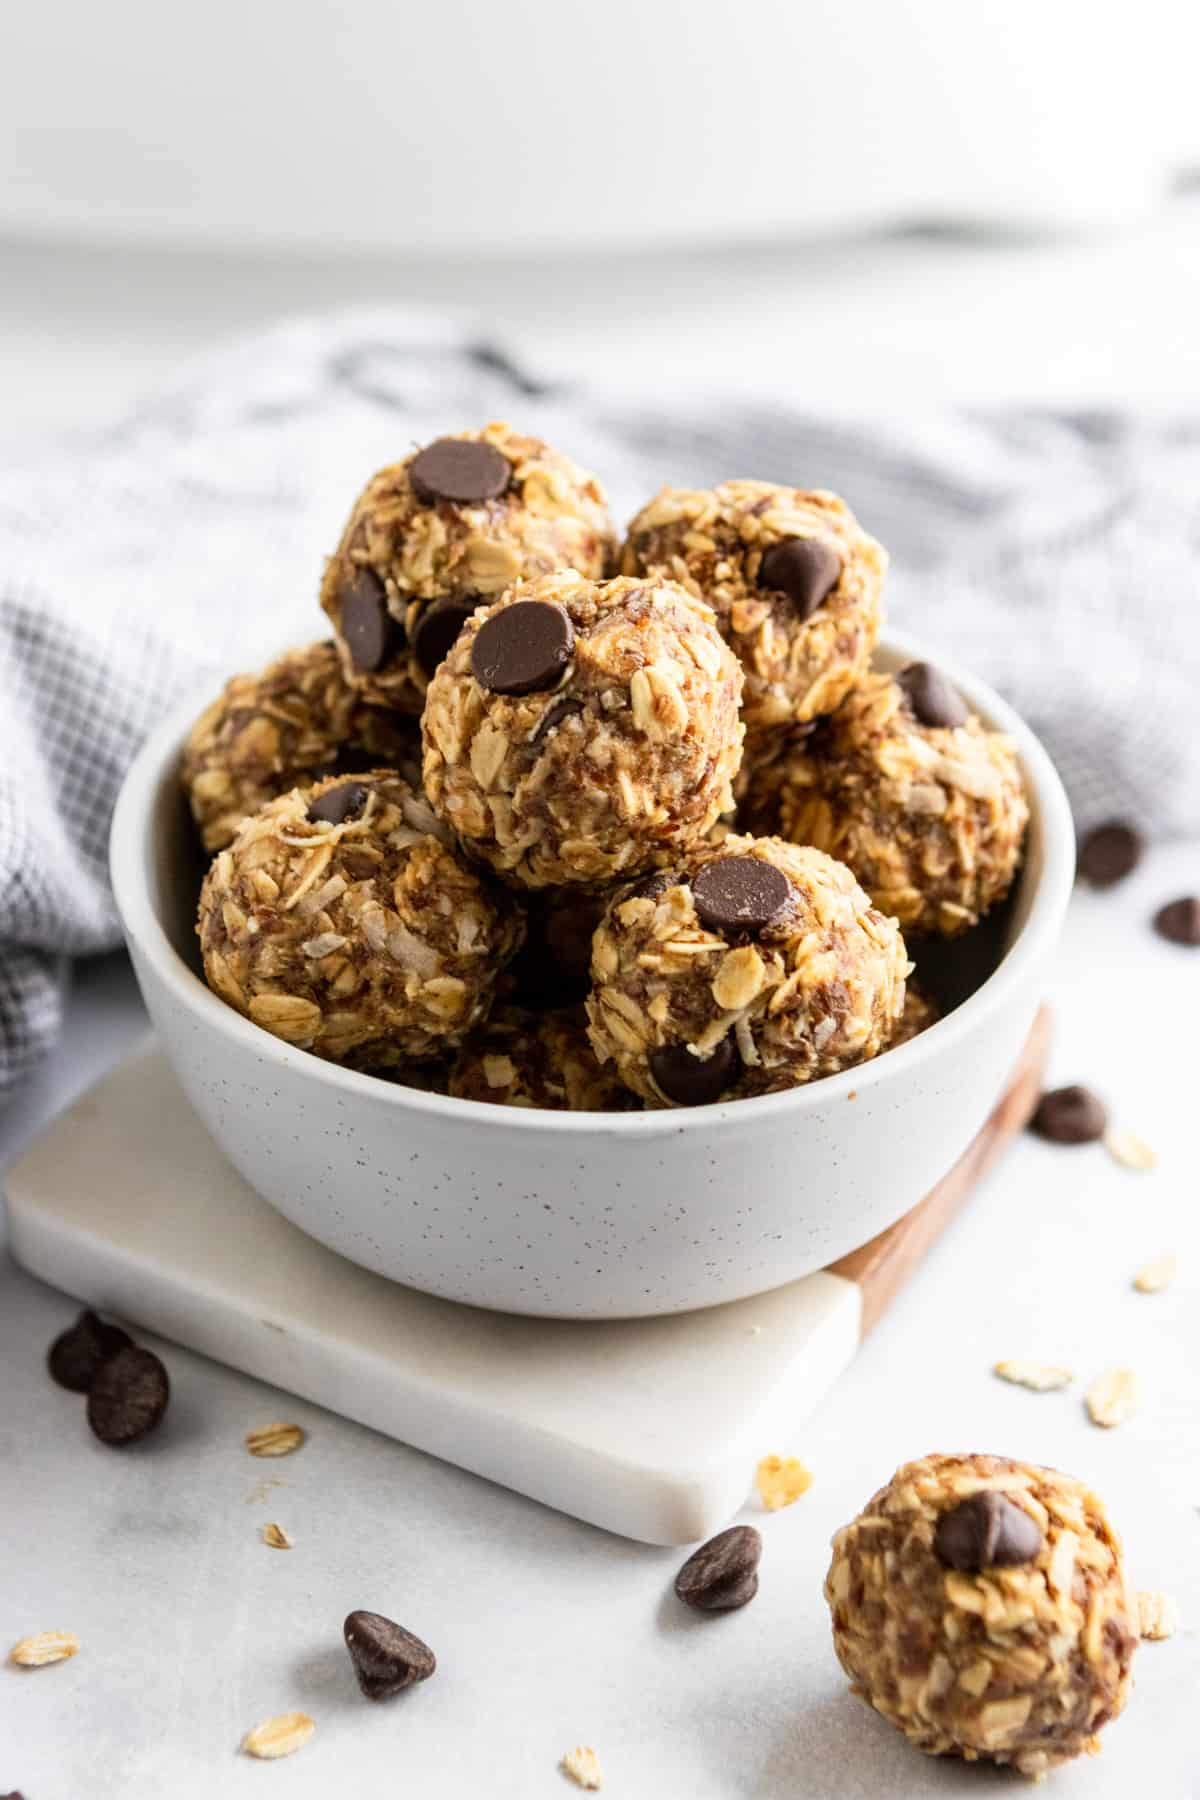 Peanut Butter Oatmeal balls in bowl on coaster.